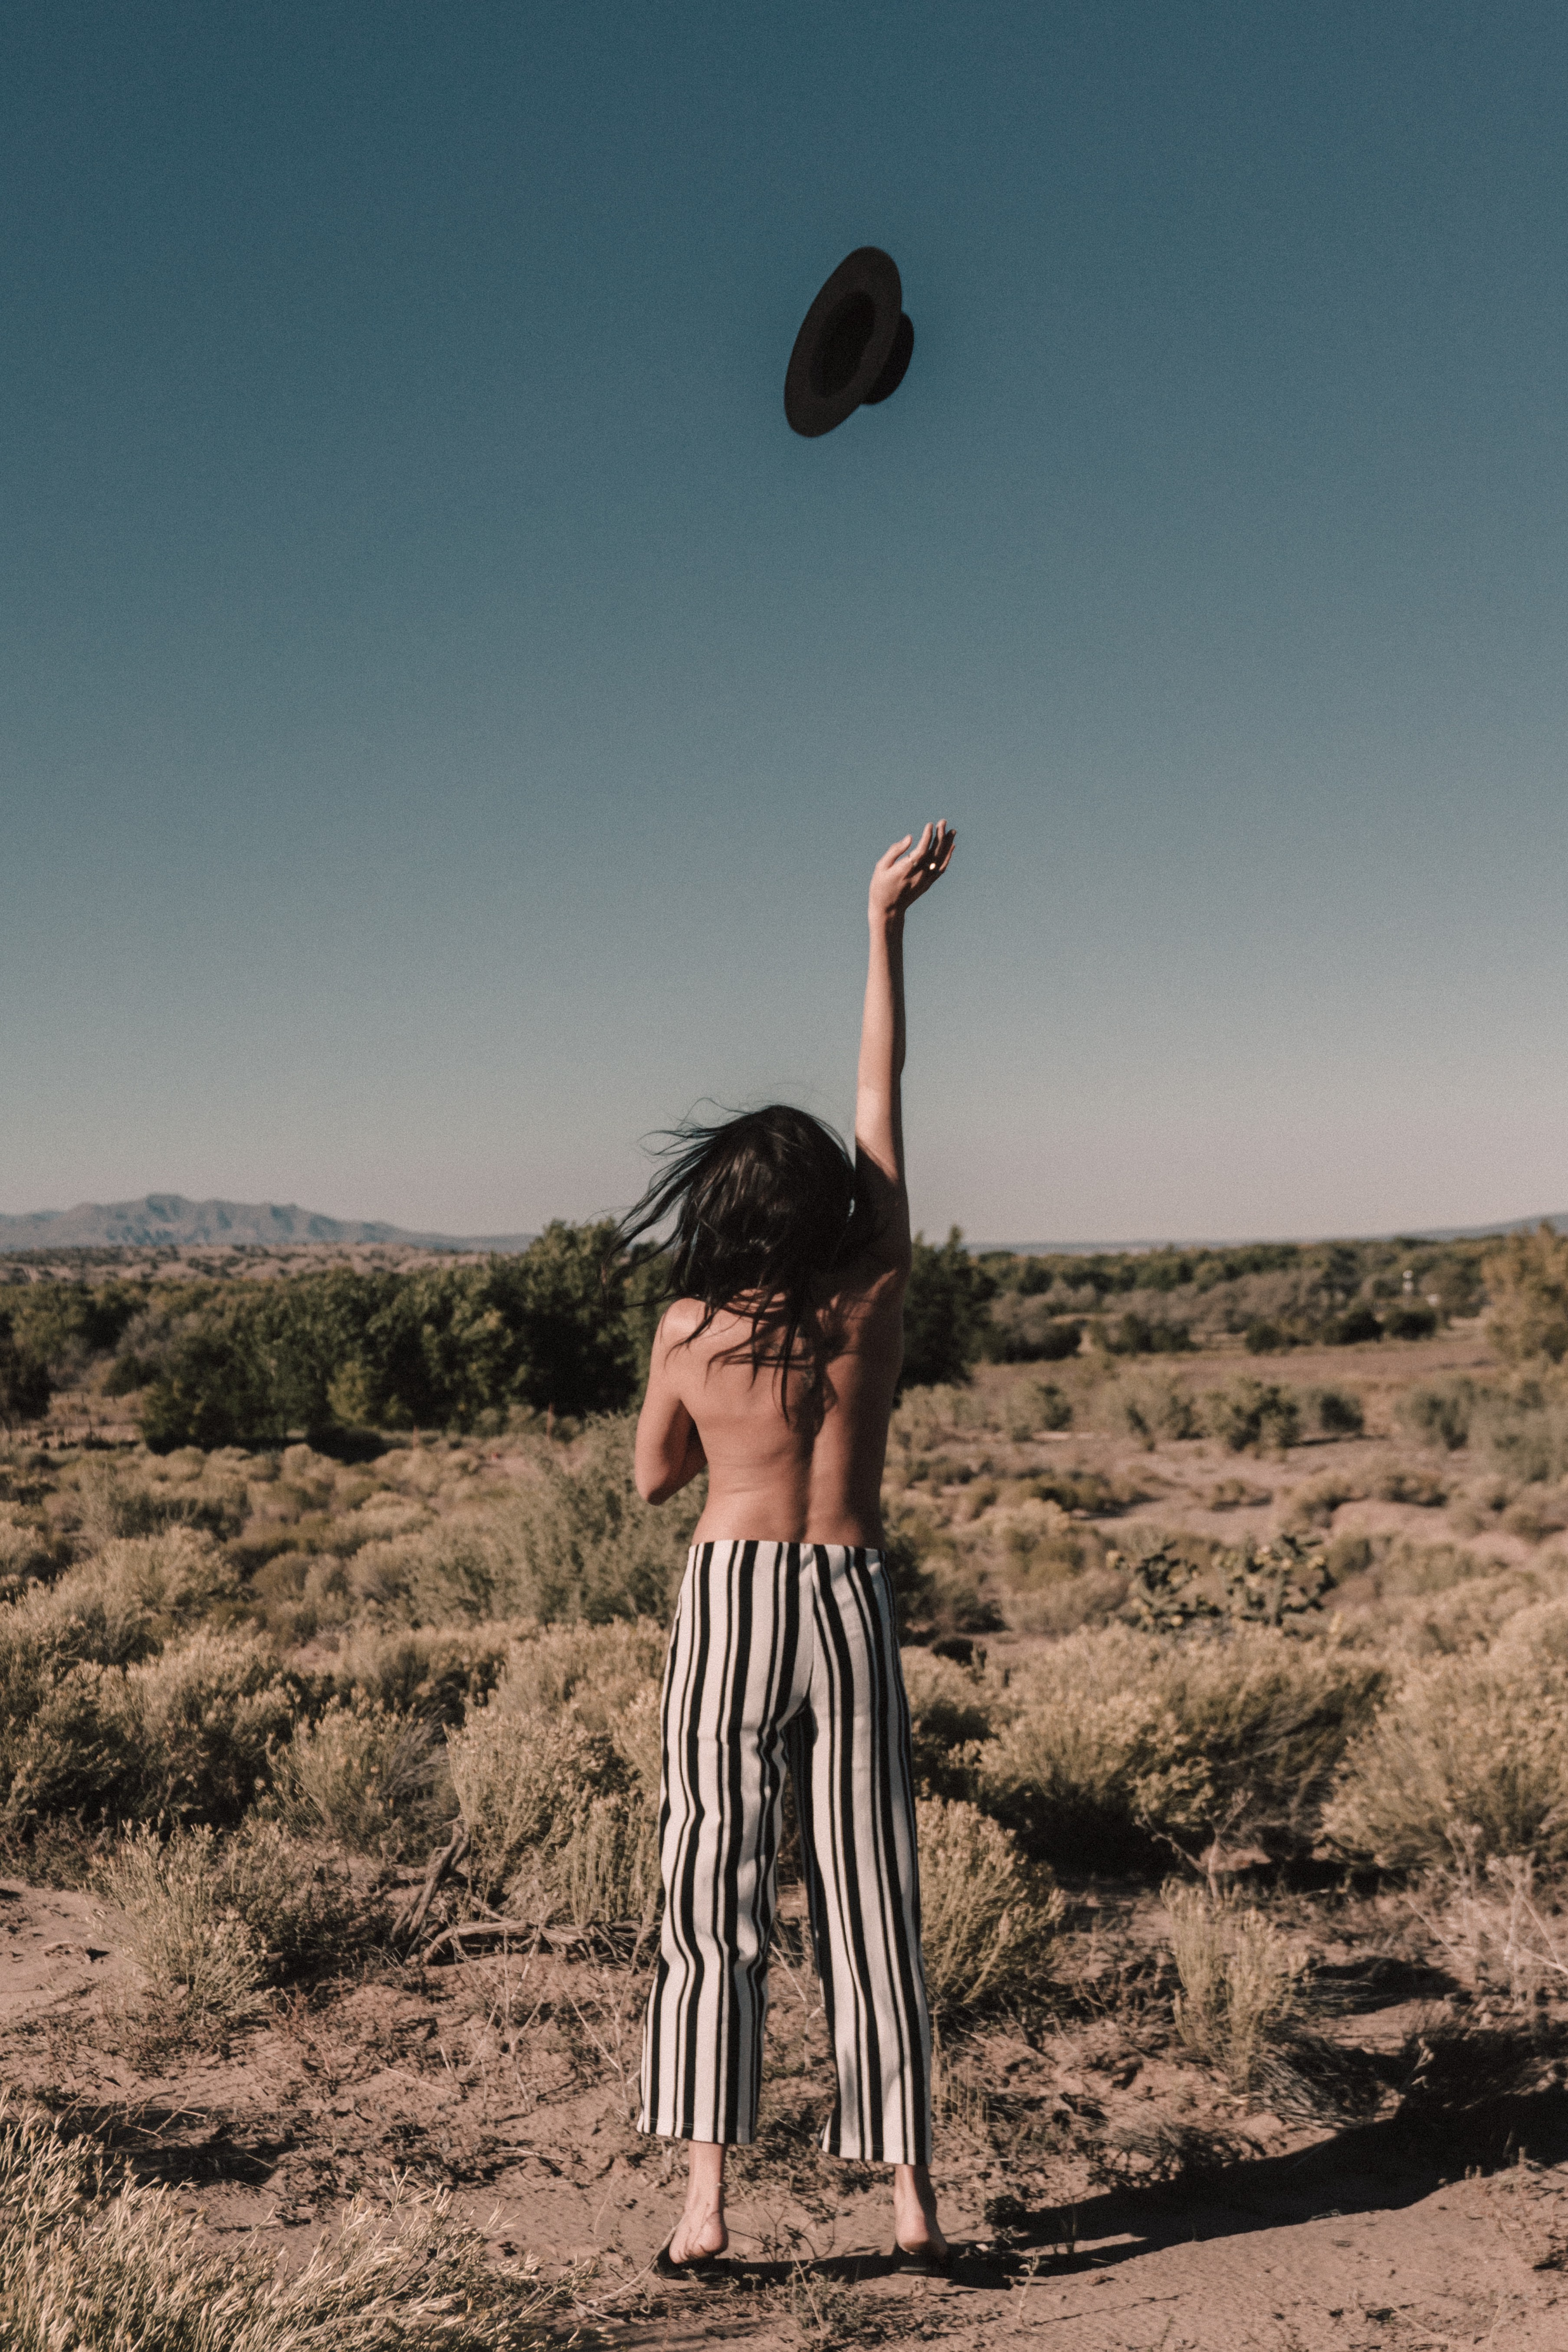 Topless brunette woman facing away from the camera, throwing her hat in the air with her hand raised